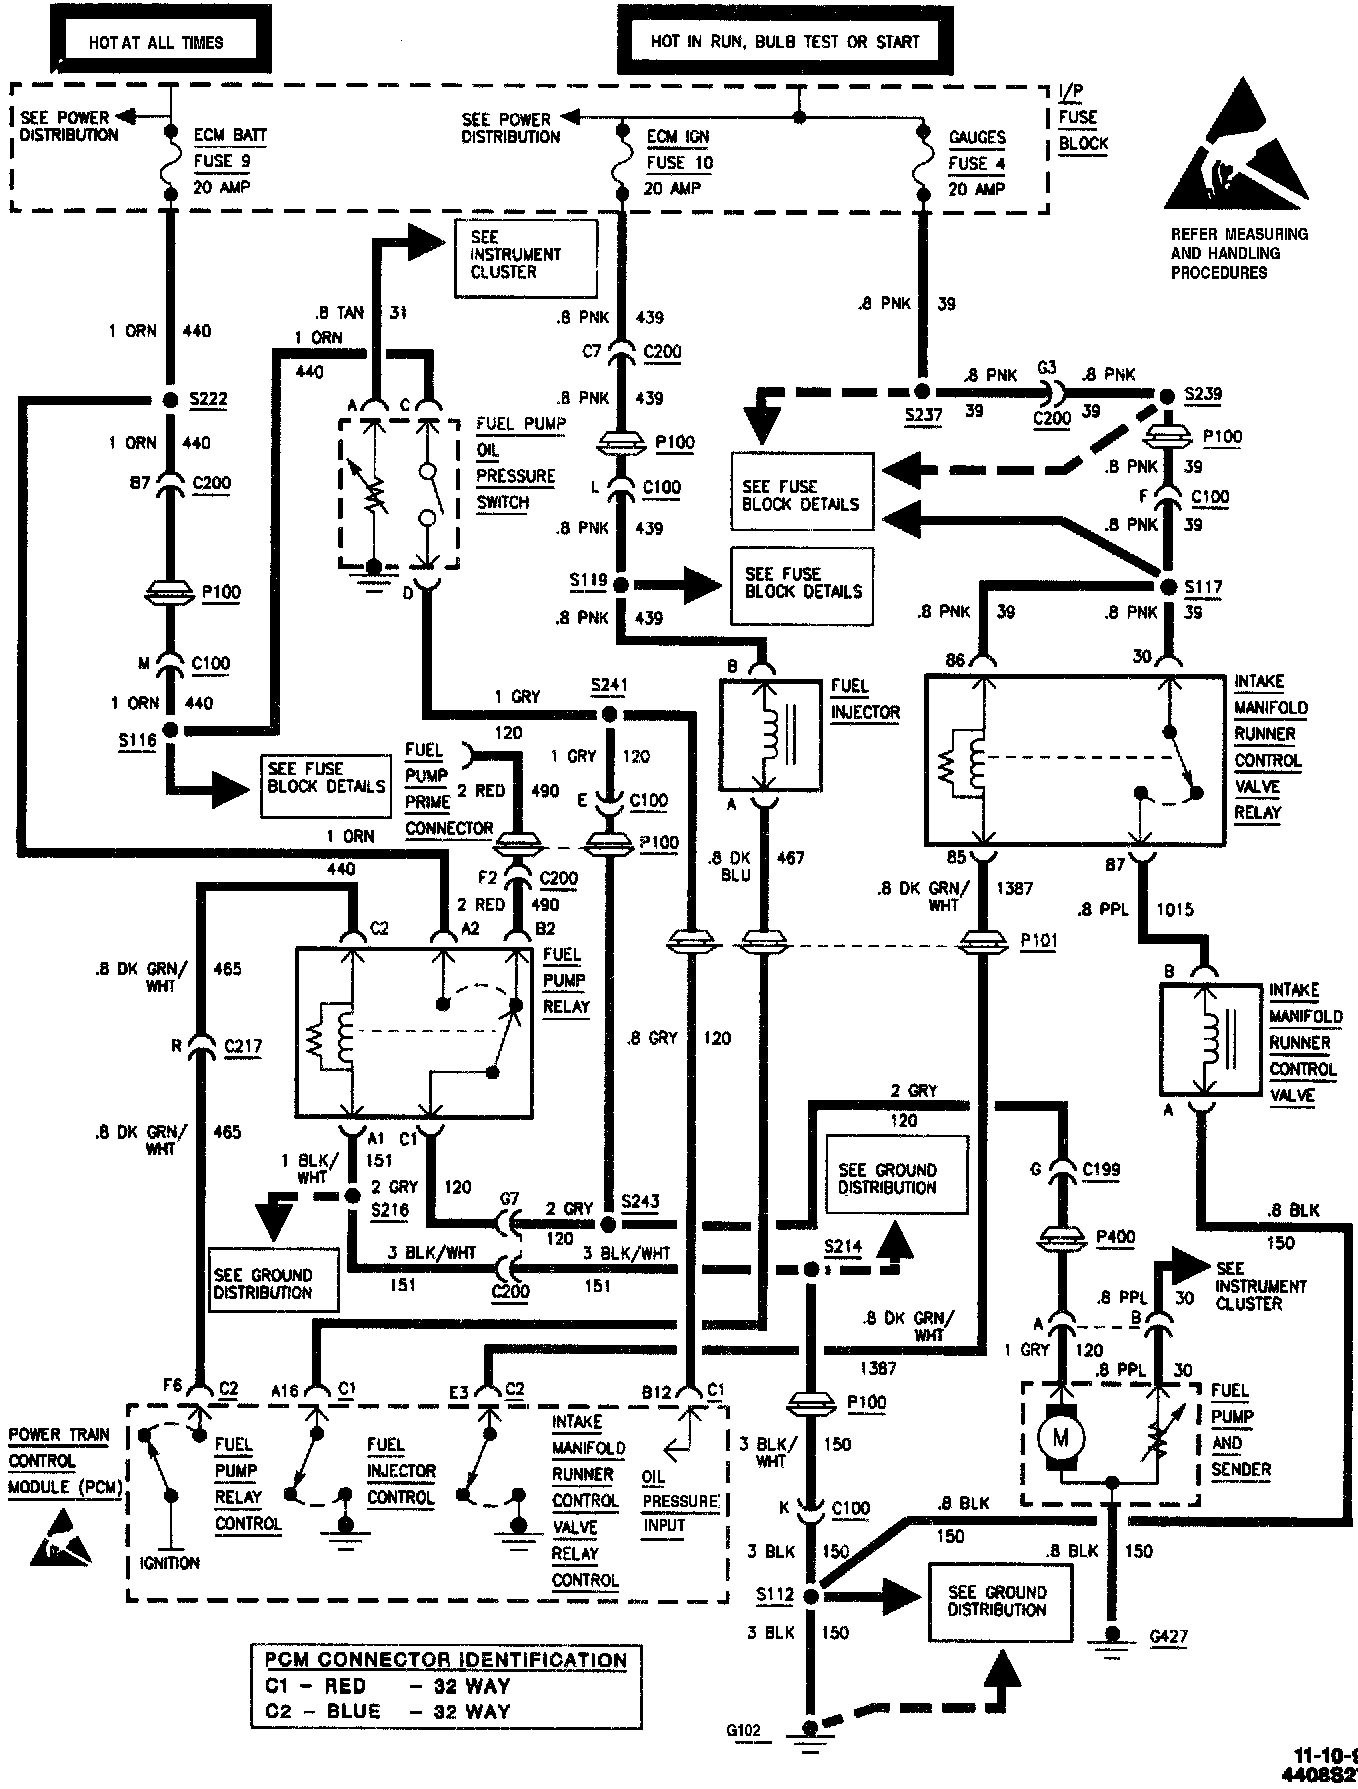 hight resolution of 96 chevy s10 wiring diagram wiring diagrams konsult96 s10 truck wiring diagram wiring diagram set 96